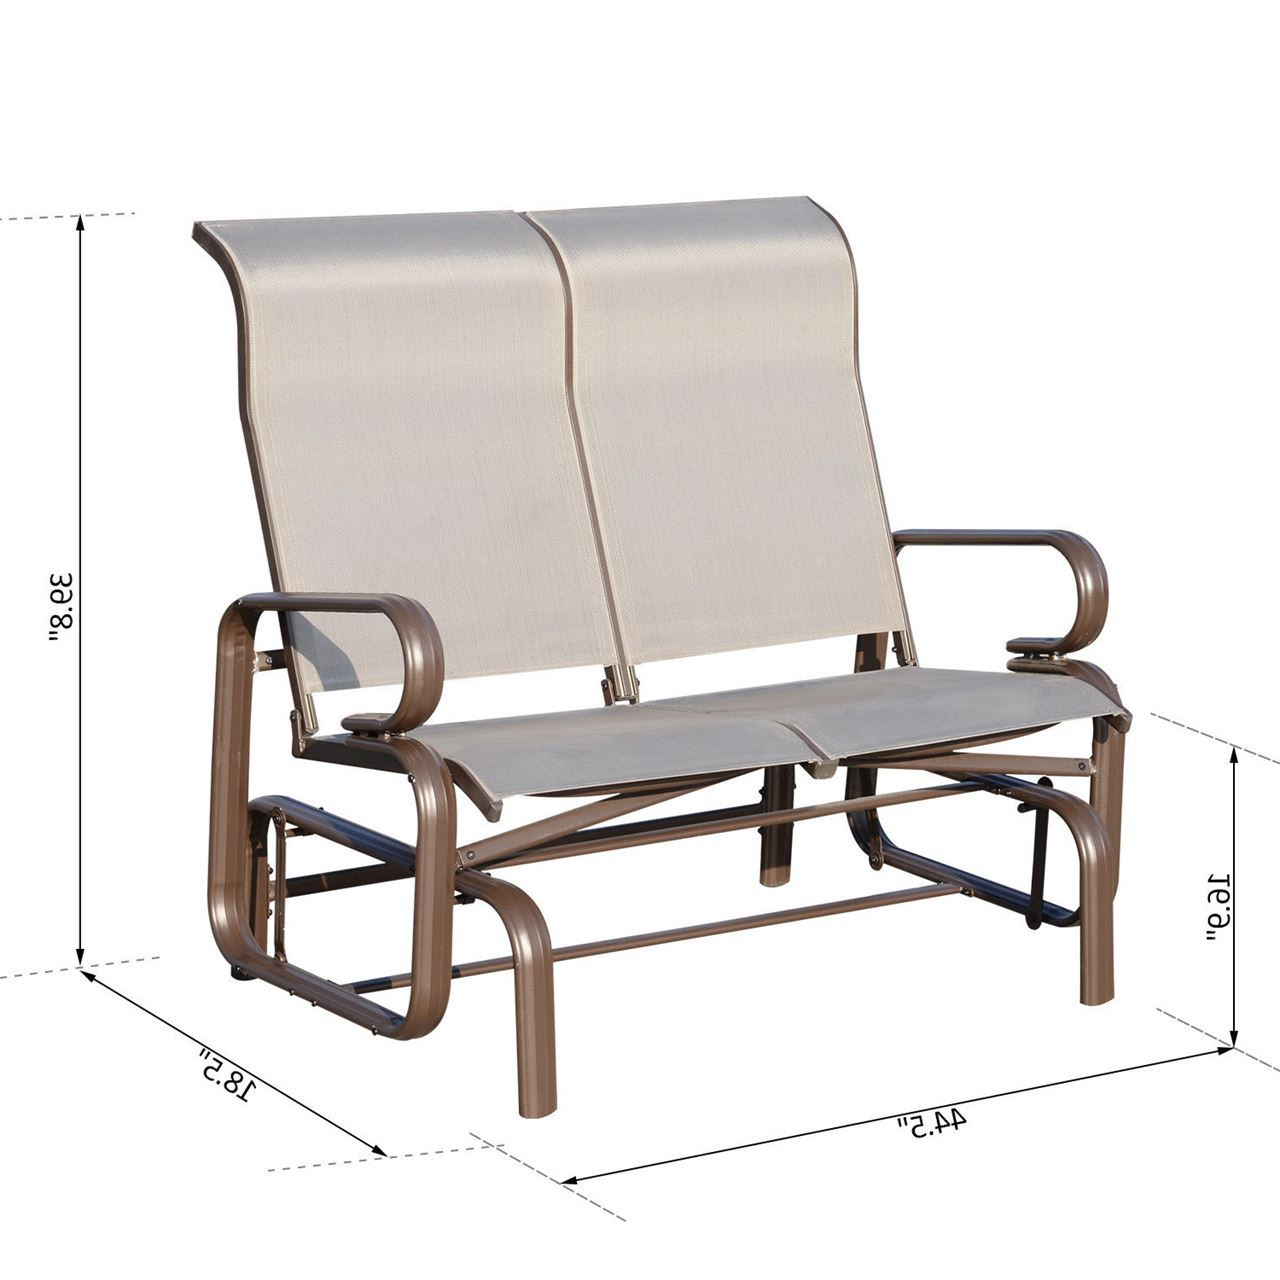 Aluminum Outdoor Double Glider Benches For Well Known Outdoor Aluminum Double Glider Rocking Bench Swing (View 4 of 30)